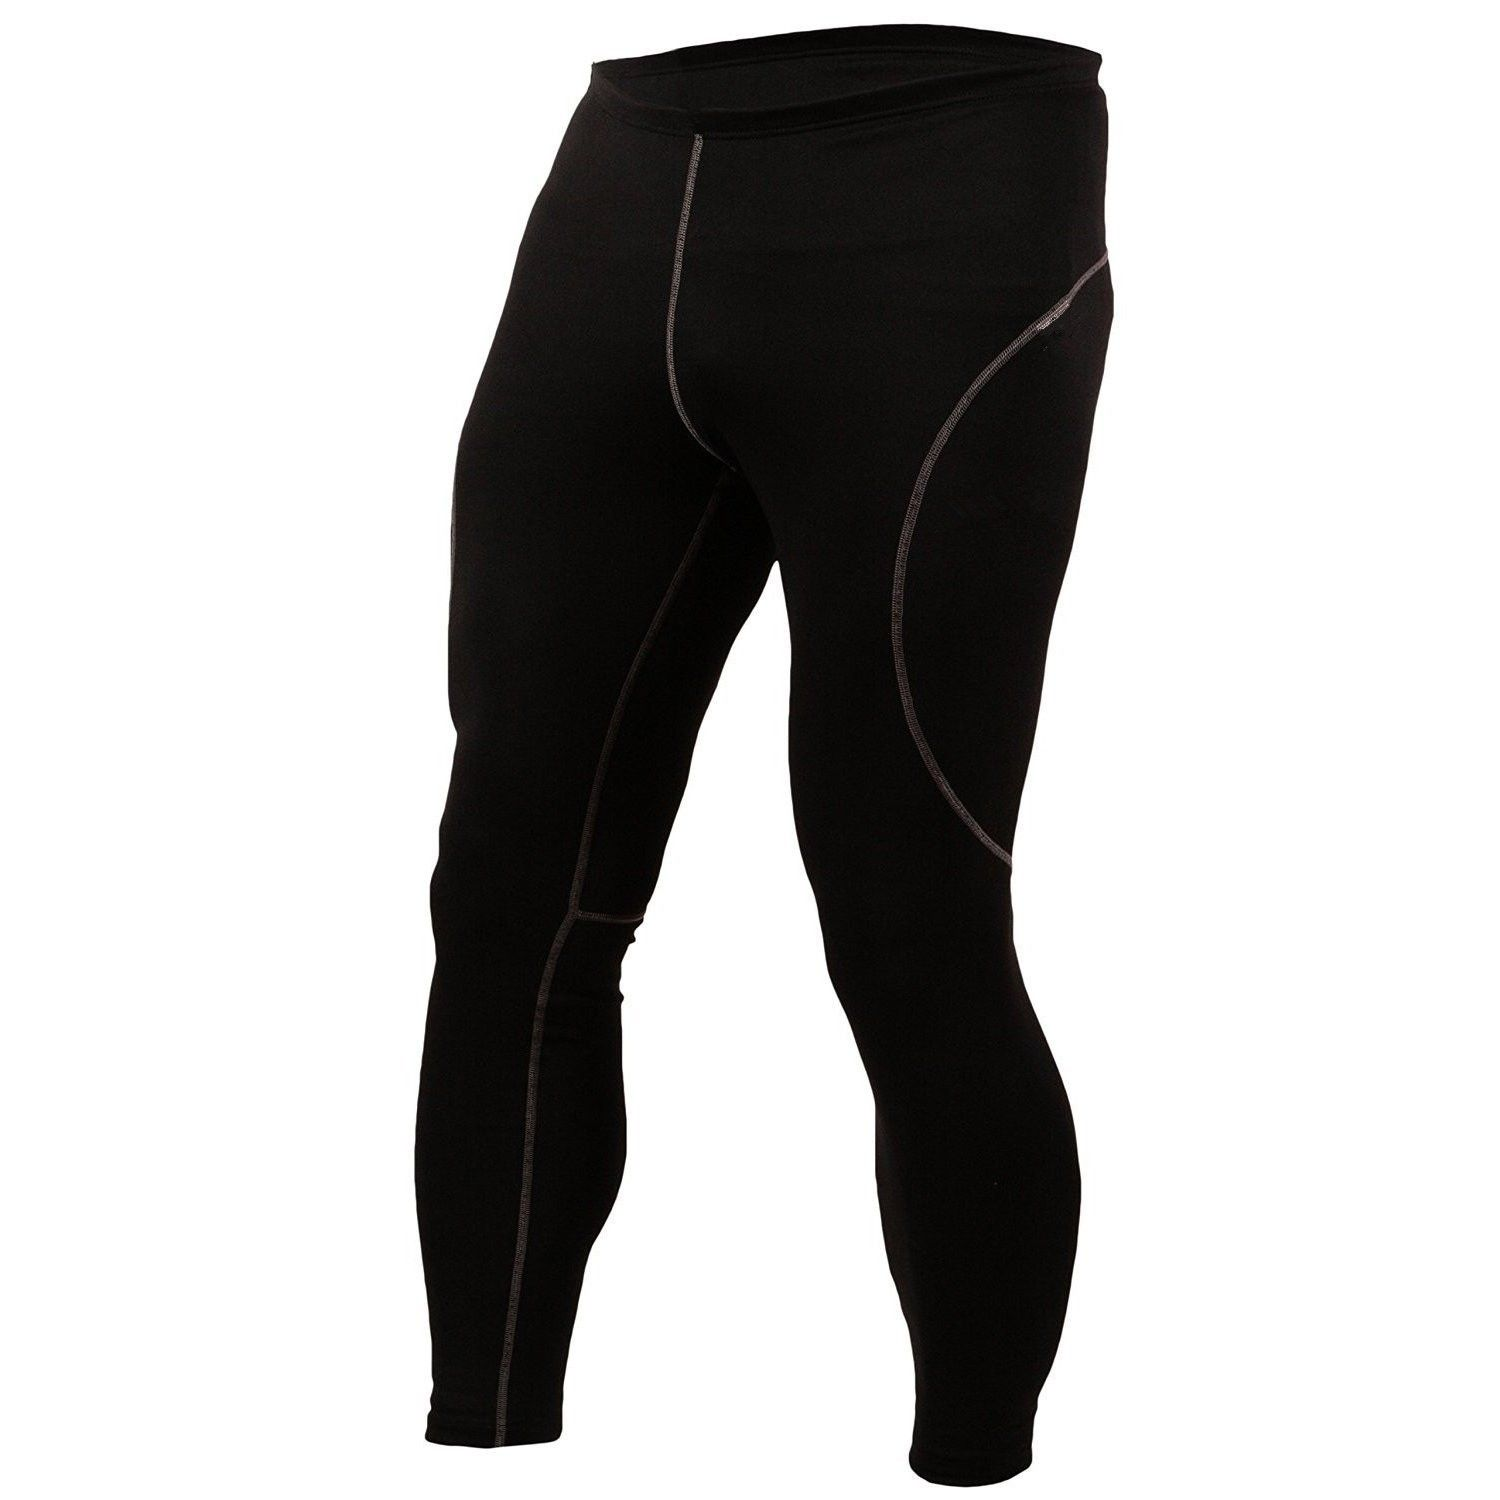 30909bf293 Men's Clothing, Active, Active Pants, Men's Compression Base Layer Pants  Workout Running Tights - Black - CA12N9OQZJM #fashion #Active #men #outfits  ...